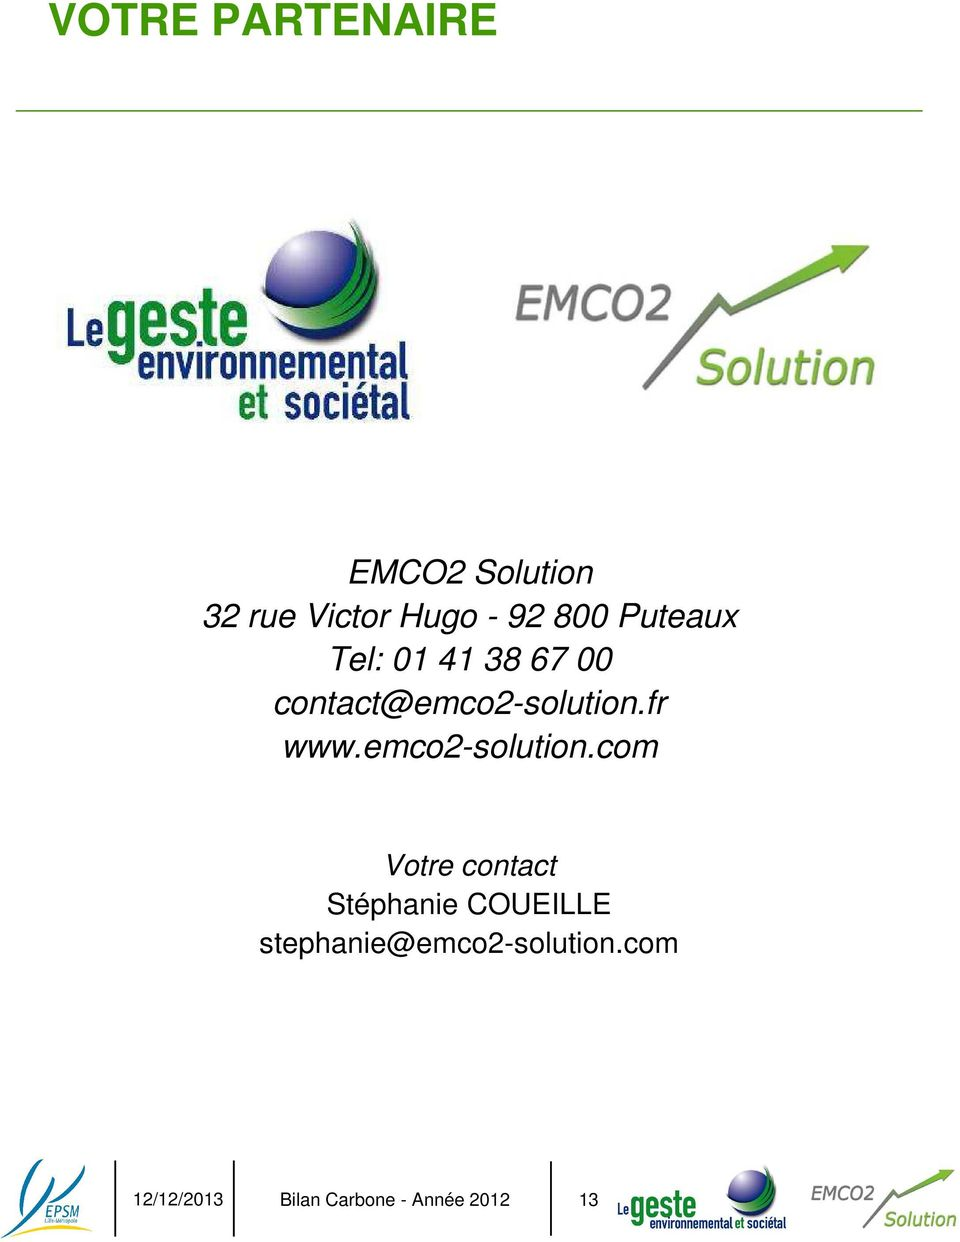 contact@emco2-solution.